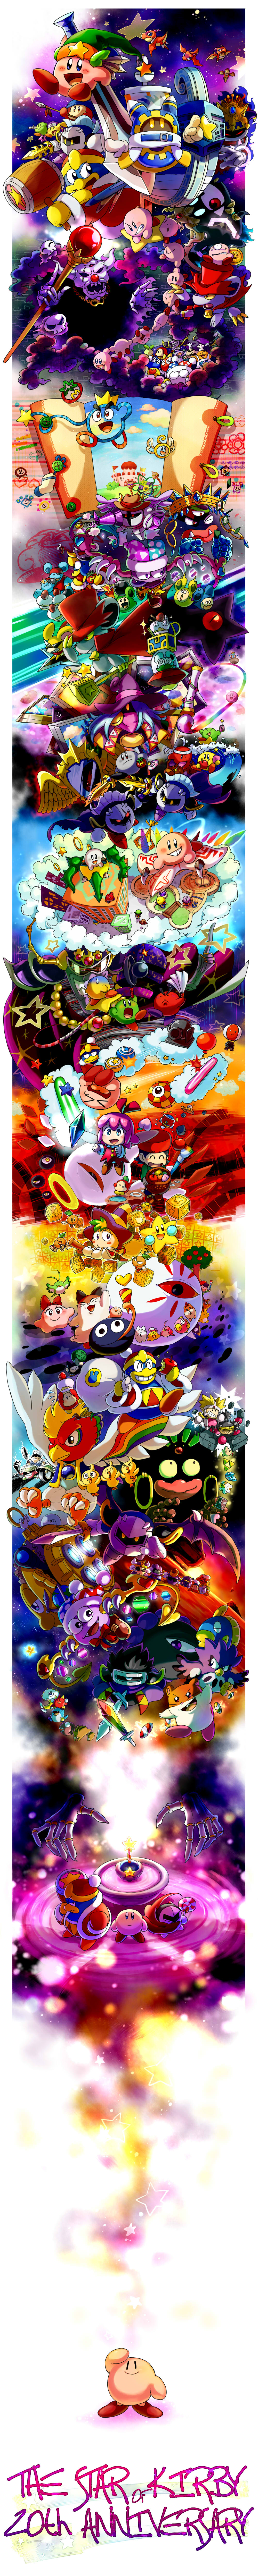 >_< ._. 0_0 :3 :d ;d absolutely_everyone absurdres adeleine angel_wings angie_(kirby) angry animal_ears anniversary annoyed apple apron artist_request axe_knight_(kirby) bag balloon bandana bandanna basket bat_wings beadrix_(kirby) beanbon bell belt_buckle bird black_sclera blimp block blue_hair blush_stickers bomb boots bow buck_teeth buckler building buster_(kirby) buttons cake candy cane cannon cape captain_vul carrie_(kirby) castle cat cellphone character_request chef_hat chef_kawasaki chuchu_(kirby) claws cloak clone cloud clouds collar coo_(kirby) cook_osaka crayon crazy_eyes crescent crown crystal crystal_shard dark_matter dark_matter_(samurai) dark_meta_knight dark_mind_(orb) dark_nebula doc_(kirby) dorocche doseisan dragon dragoon_(kirby) drawcia dress dual_persona dyna_baby dyna_blade earrings eating english epaulettes escargon everyone eyebrows eyelashes falling fan fangs fedora flying food fountain_of_dreams frog from_above from_behind frown fruit frying_pan fur_trim galacta_knight galaxia_(sword) gauntlets gears gem globe gloves glowing glowing_eyes gooey grill_(kirby) grin gun halberd_(airship) halo hammer hat headband heart highres hiiru_(kirby) horns hydra_(kirby) ice_dragon javelin_knight jester jester_cap jewelry kaboola kamina_shades kicking kine_(kirby) king_dedede kirby kirby's_adventure kirby's_dream_land_2 kirby's_dream_land_3 kirby's_epic_yarn kirby's_return_to_dream_land kirby's_star_stacker kirby's_adventure kirby's_dream_land_2 kirby's_dream_land_3 kirby's_epic_yarn kirby's_return_to_dream_land kirby's_star_stacker kirby_(series) kirby_64 kirby_air_ride kirby_and_the_amazing_mirror kirby_canvas_curse kirby_mass_attack kirby_nightmare_in_dream_land kirby_squeak_squad kirby_super_star knitting_sticks knuckle_joe kracko ladle lalala_(kirby) lance landia lemon lightbulb lollipop lololo_(kirby) long_hair long_image long_tongue looking_up lor_starcutter mace_knight mahoroa mahoroa_soul mara_(kirby) marx marx_soul mask mast master_crown maxim_tom